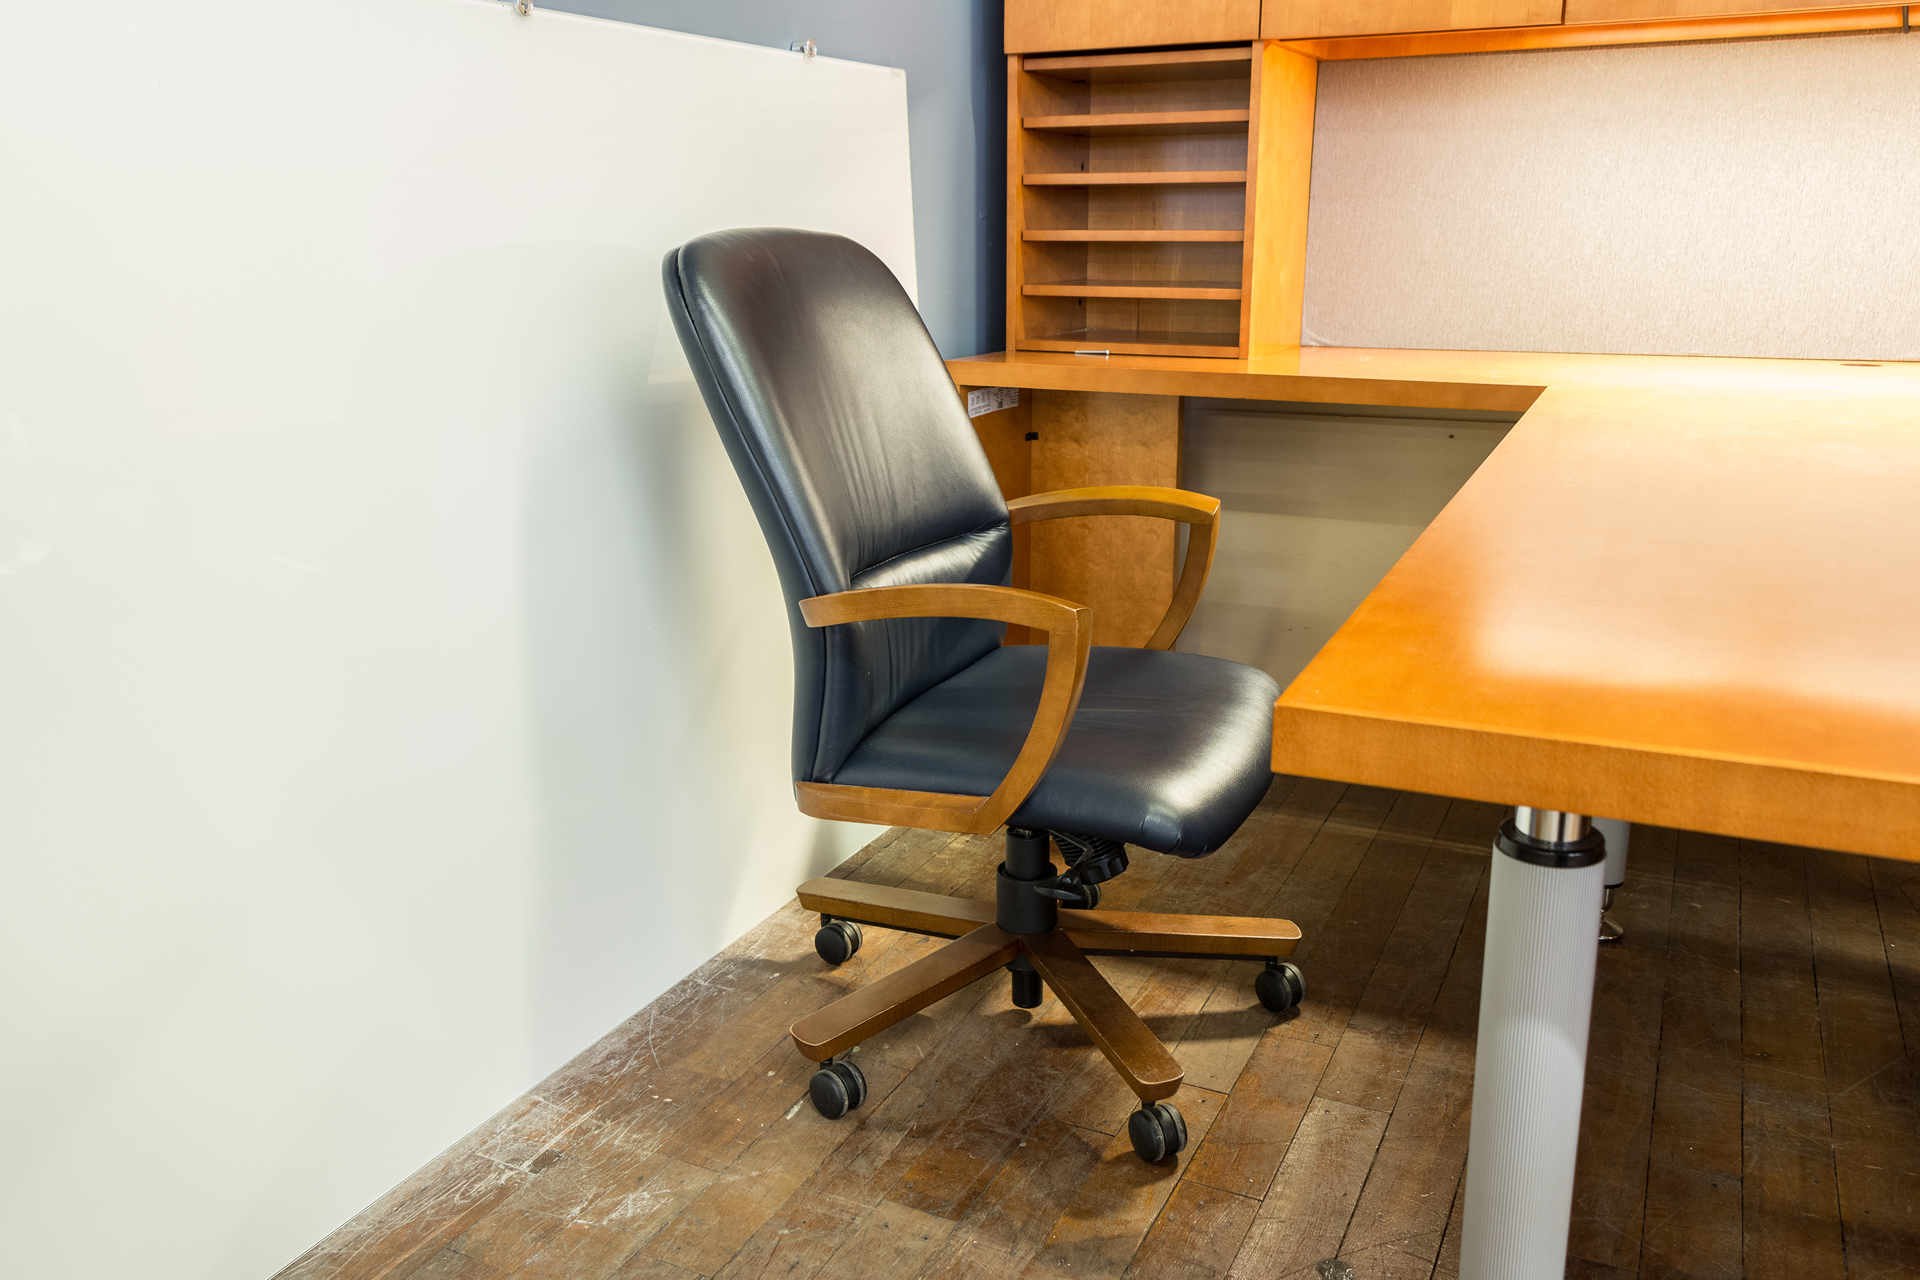 peartreeofficefurniture_peartreeofficefurniture_peartreeofficefurniture_kimball-triumph-leather-executive-conference-chairs.jpg